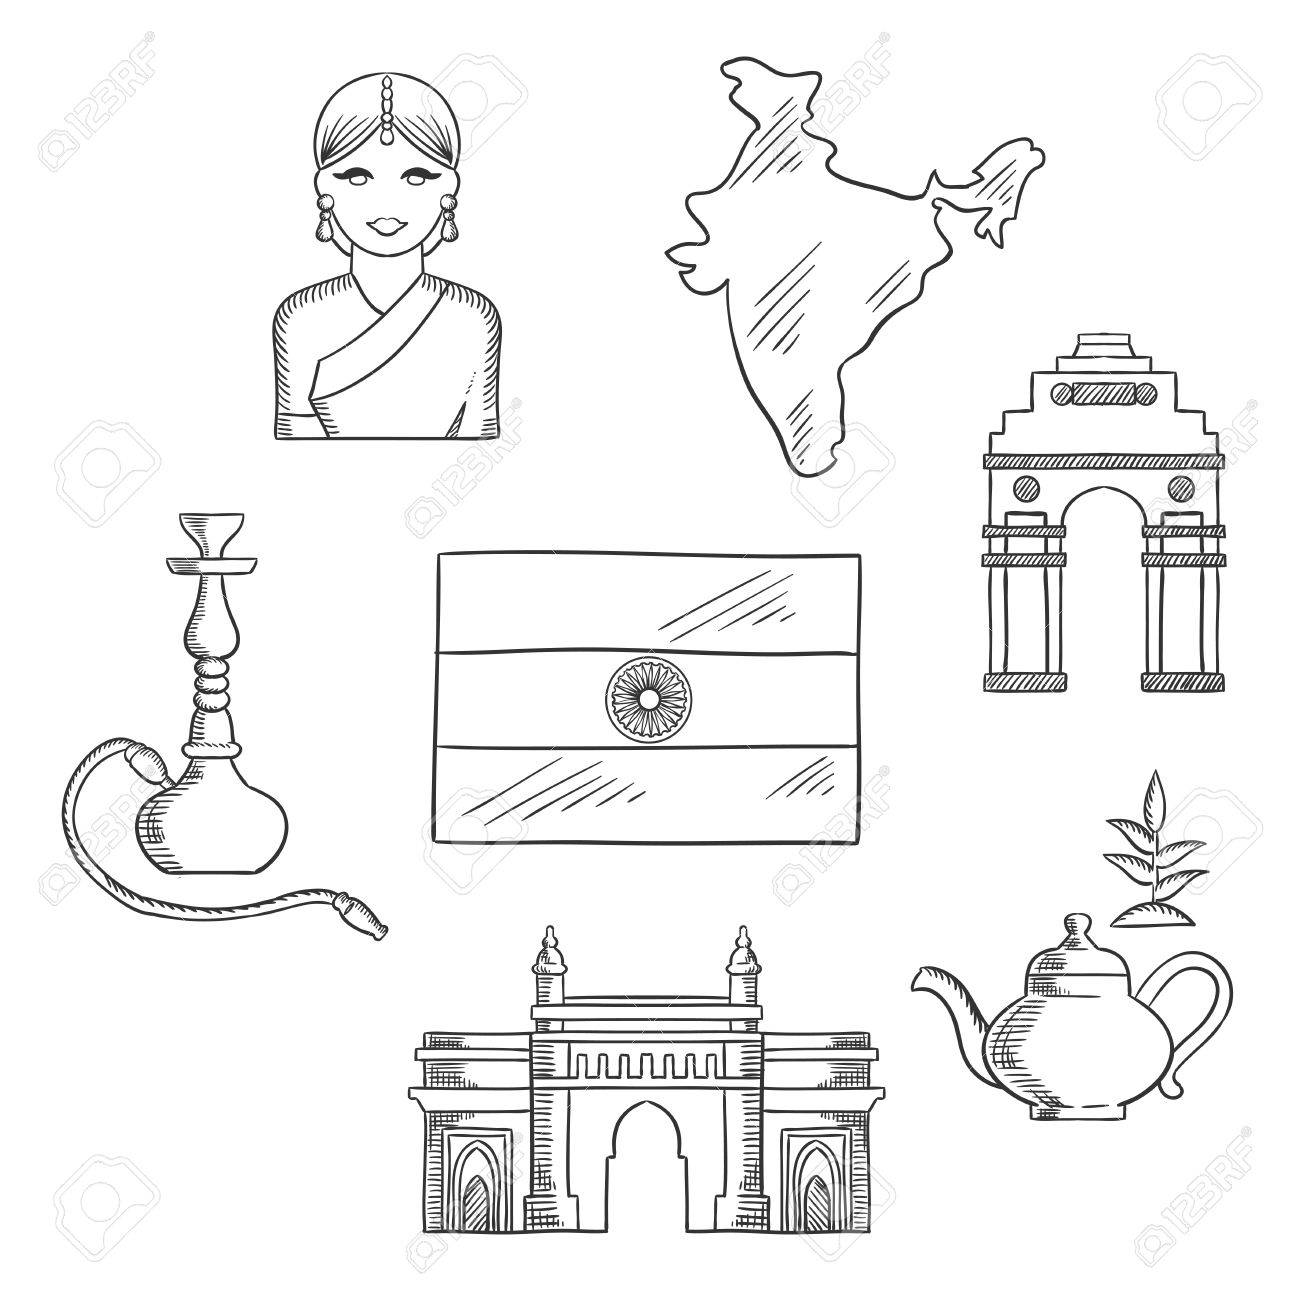 1300x1300 India Culture And Travel Concept With Sketched Icons Of Gate